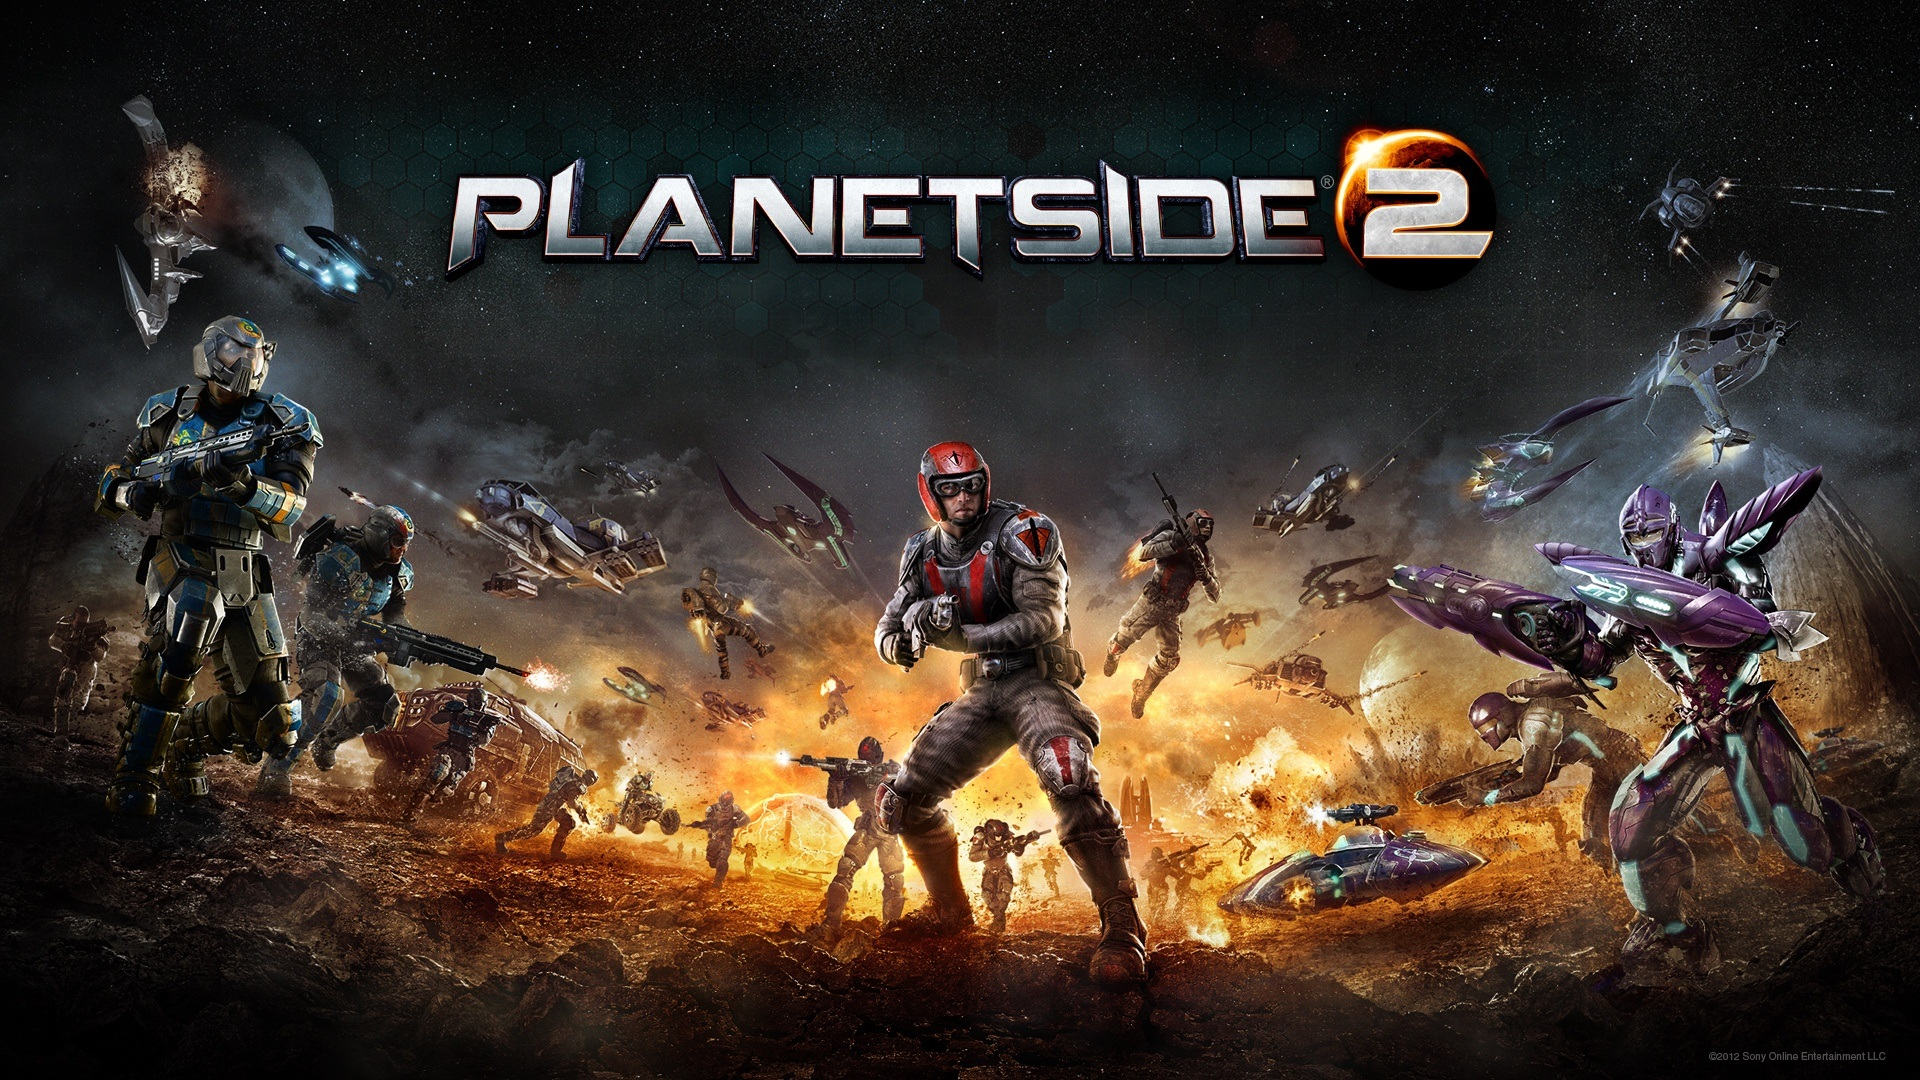 Planetside 2 Now Owns the World Record for Most Players in a First Person Shooter Battle